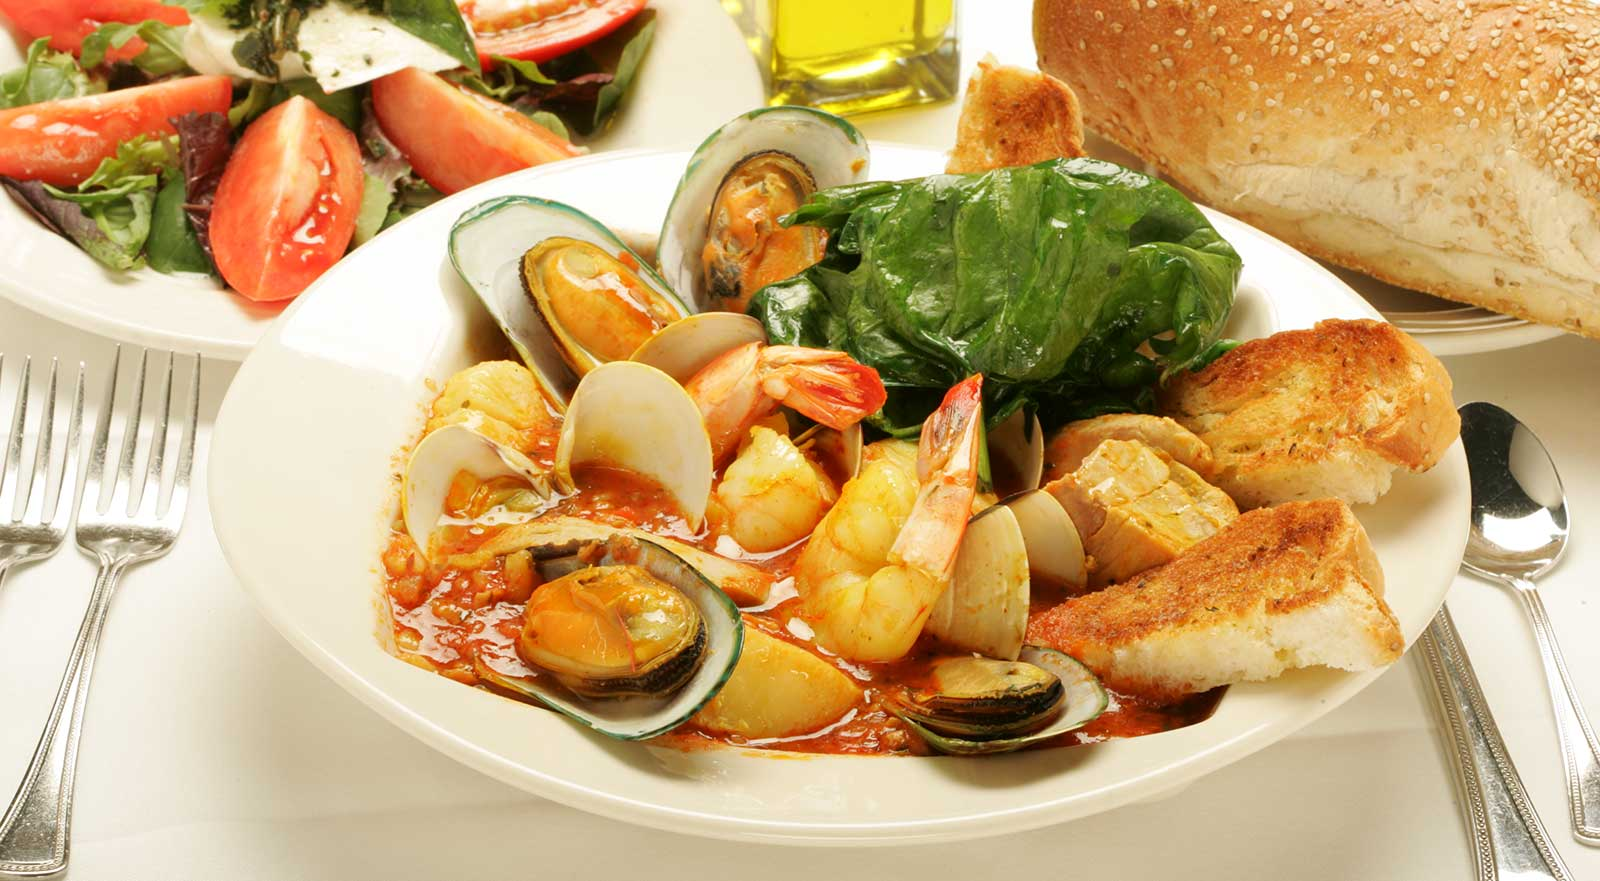 Best Italian Restaurant and Catering in St. Louis - Lorussos